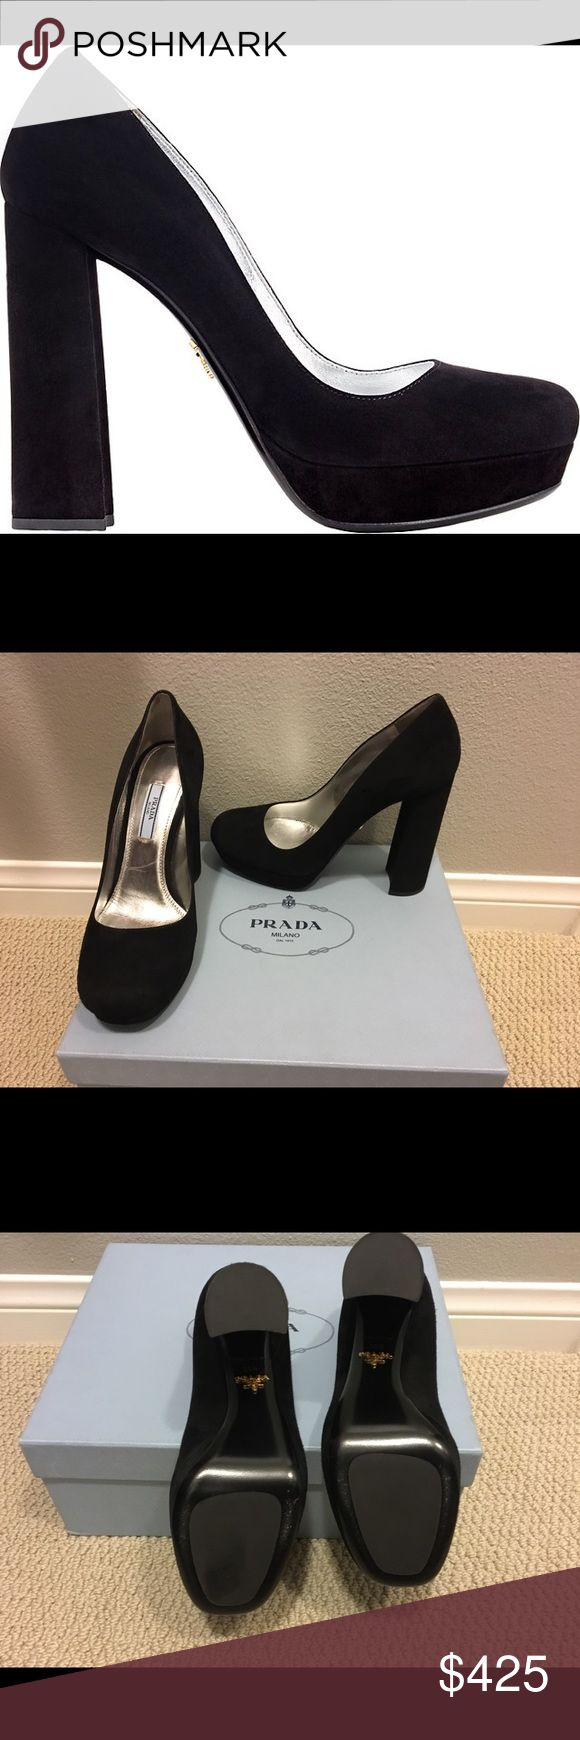 """Prada Suede Platforms, Black PRADA Suede Platform Pumps  Style # 503976781 Size 8.5 Color BLACK Includes box and dust bags  Prada's black suede platform pumps are styled with a rounded toe and thick heel.   4.5""""/115mm heel, 25mm platform (approximately) Self-covered platform and thick heel Slips on Leather sole with metal logo detail Lined Made in Italy  VEUC, worn once inside. Prada Shoes Platforms"""